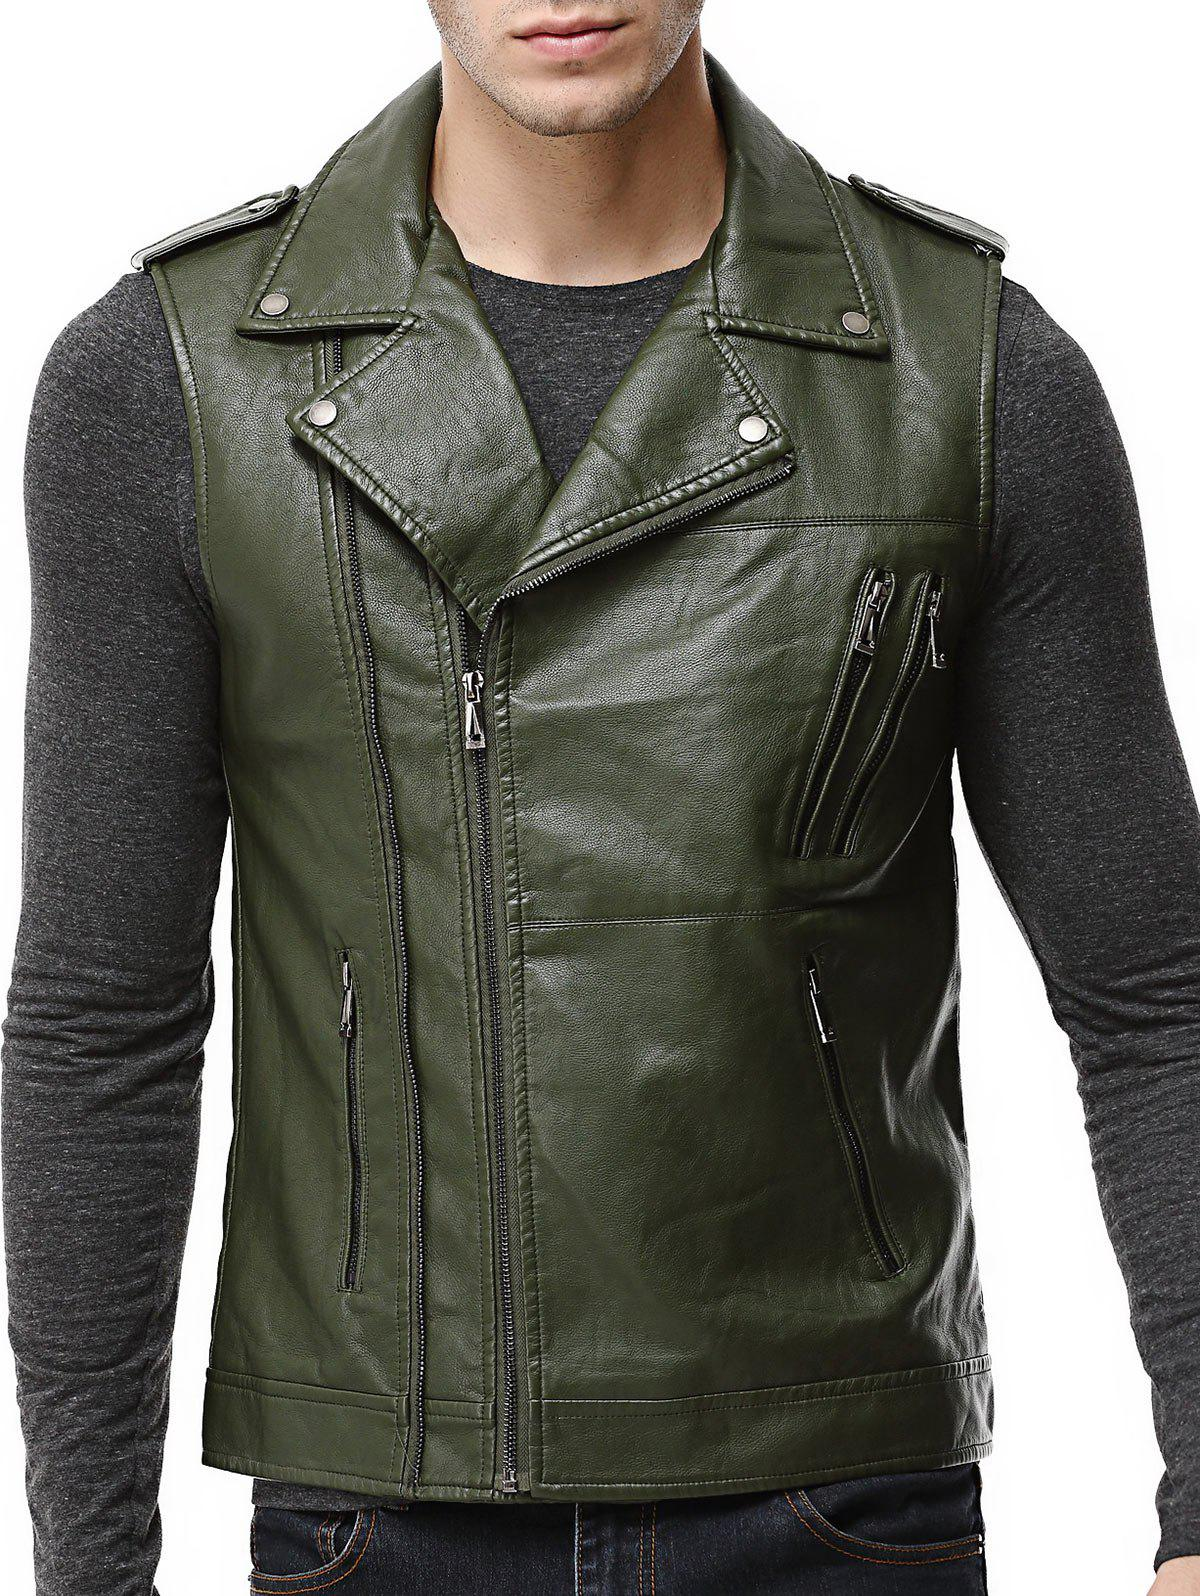 Cheap Asymmetrical Zip Epaulet Design Faux Leather Vest